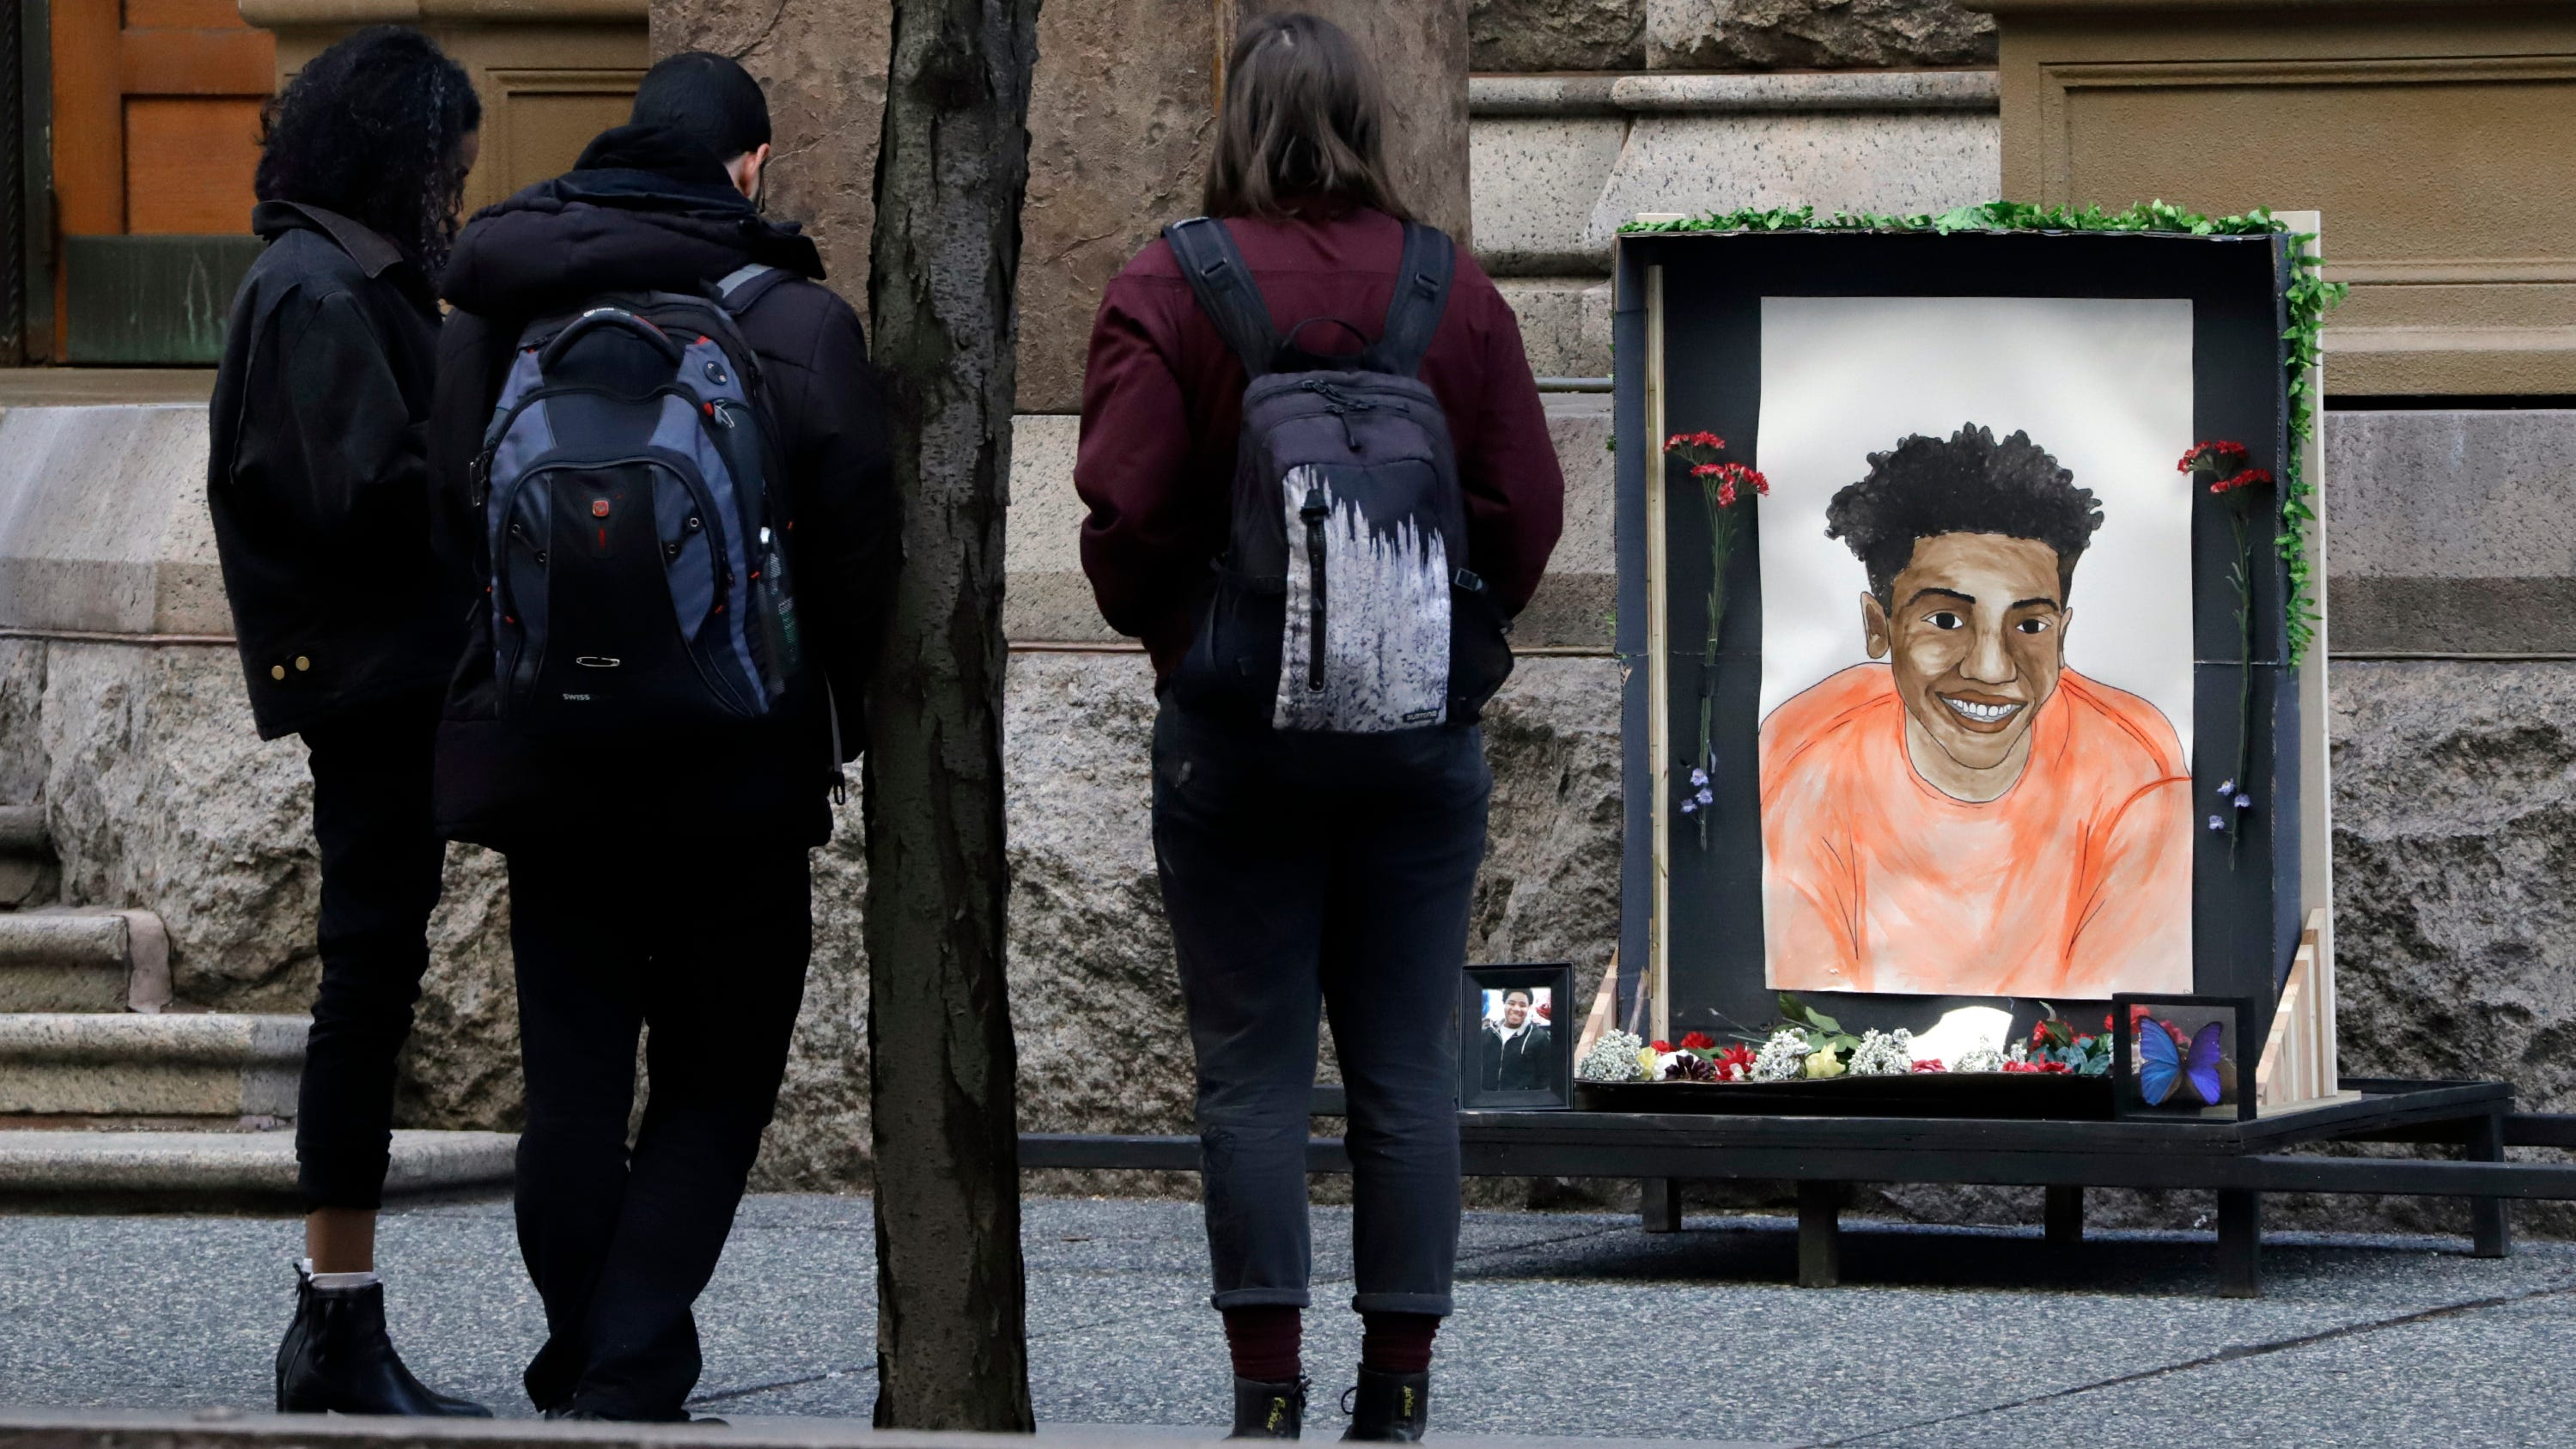 People gather around a memorial drawing of Antwon Rose II who was fatally shot as he fled during a traffic stop.